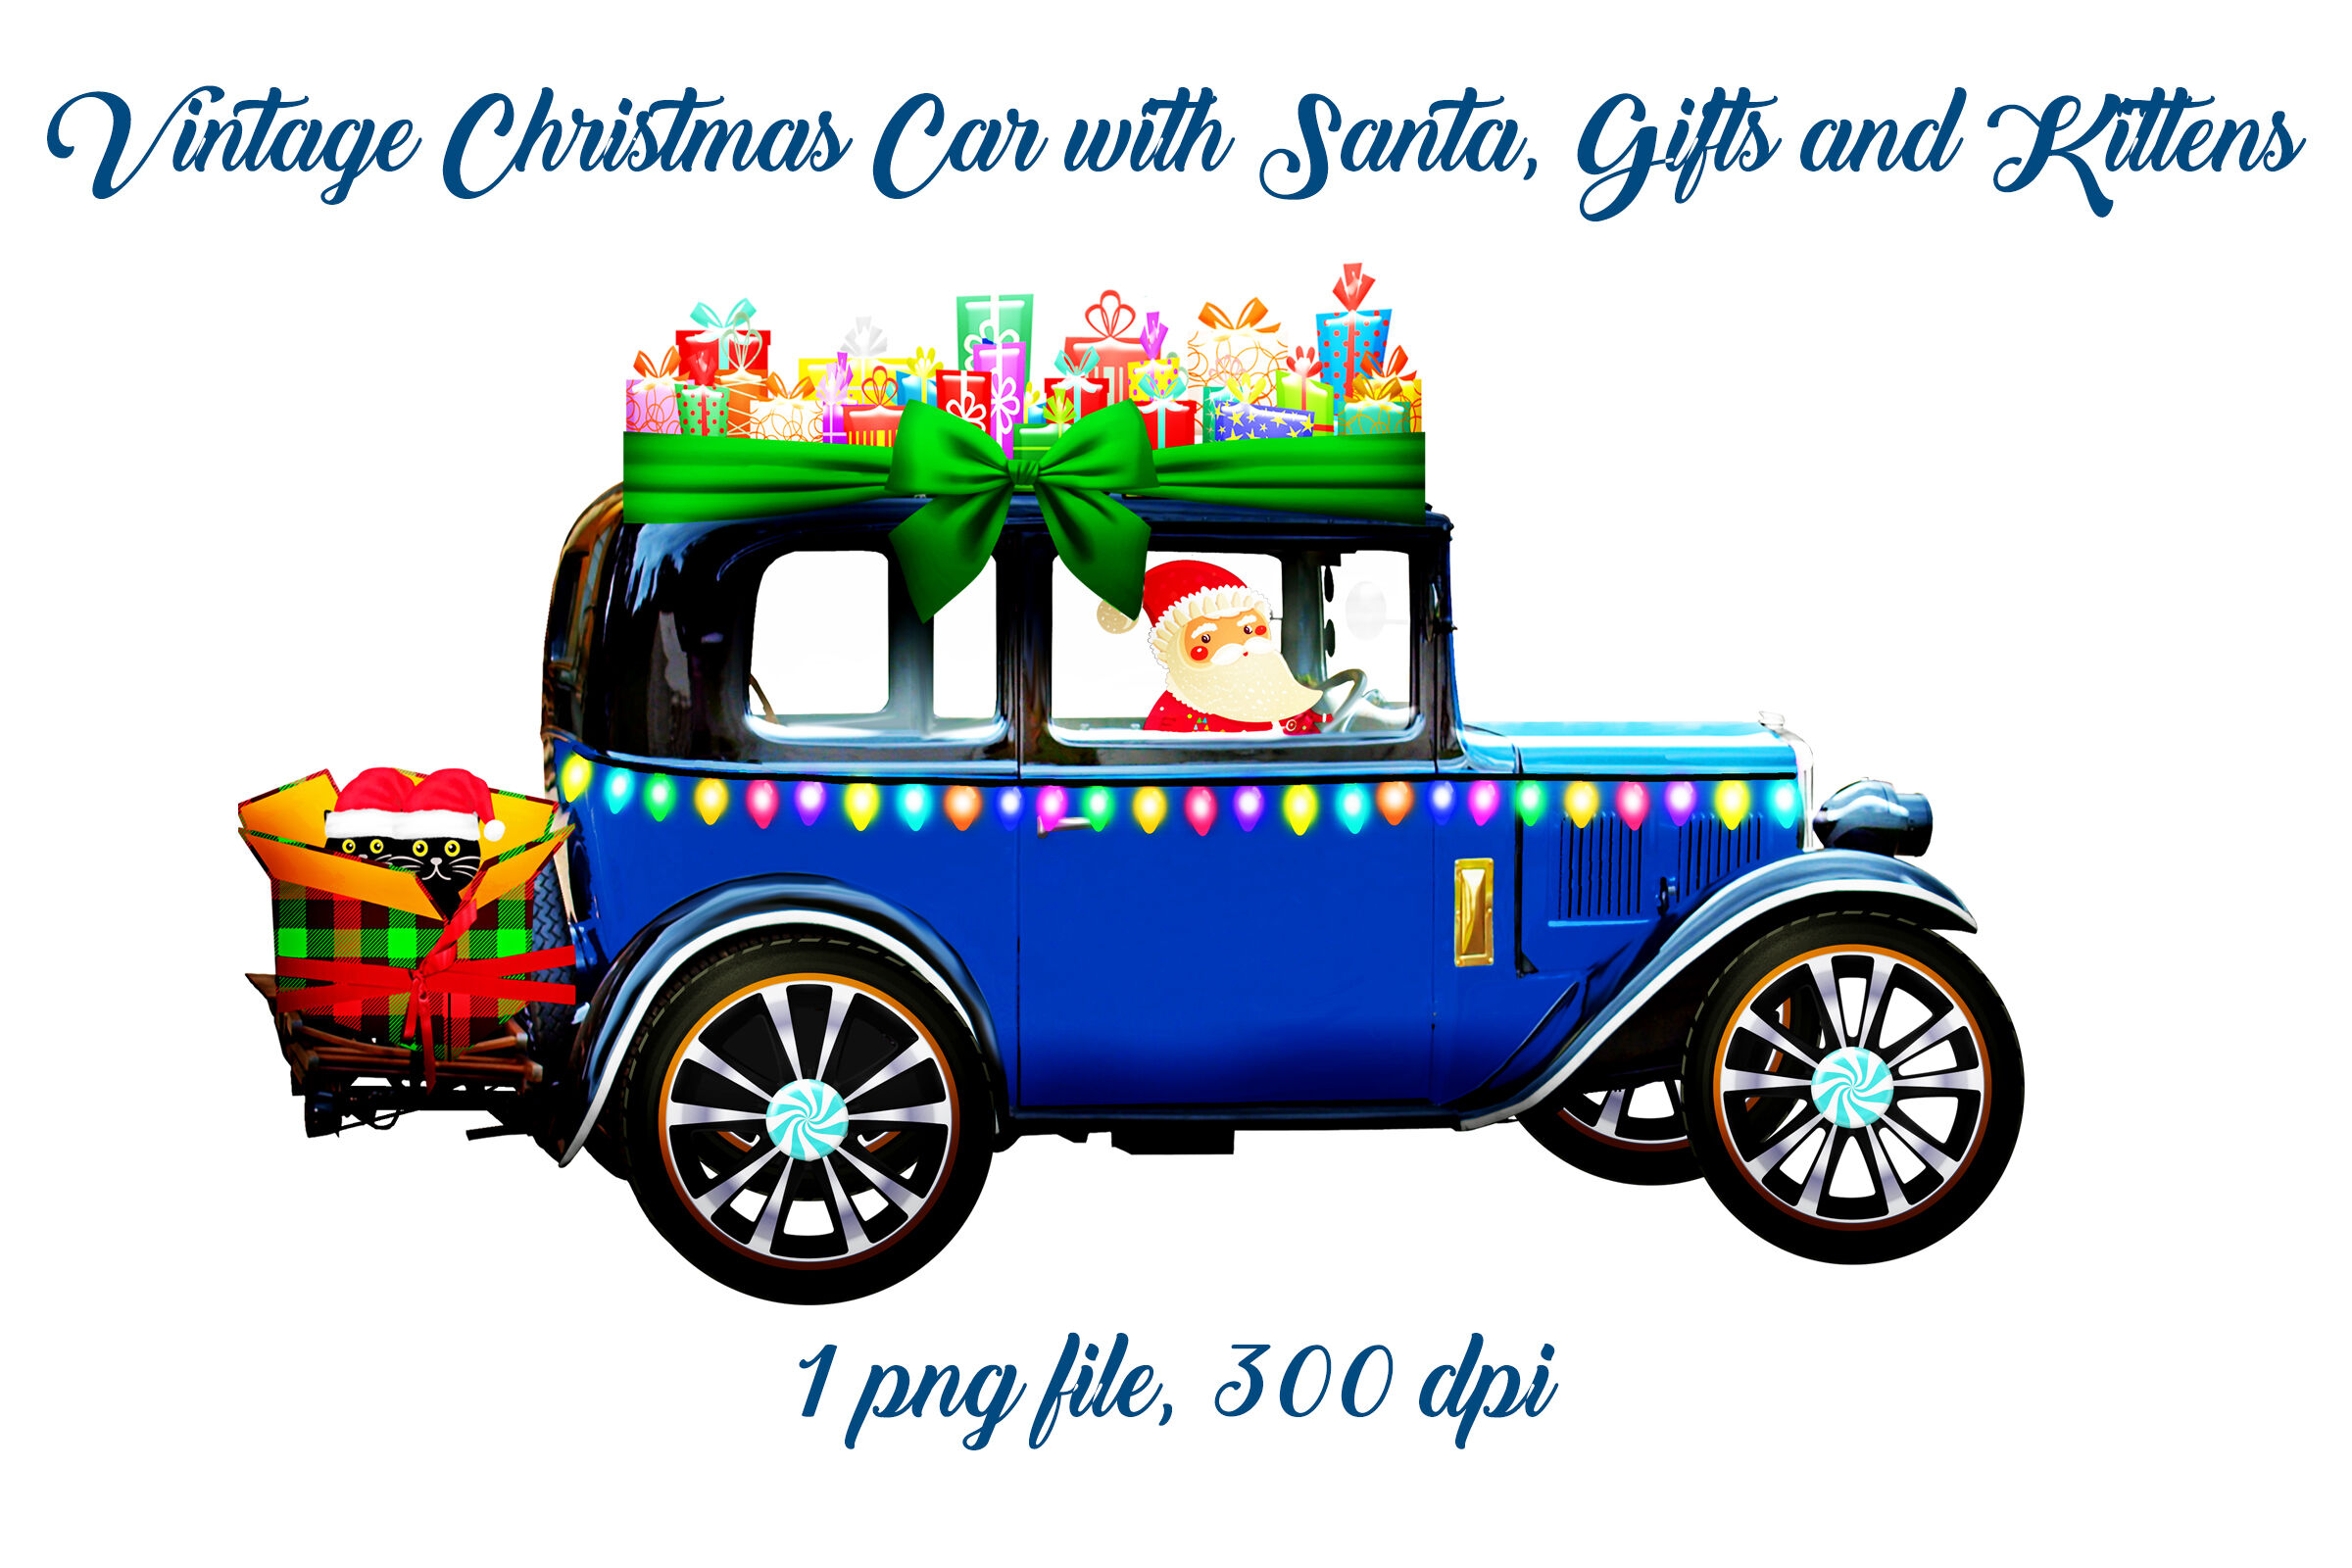 Vintage Christmas Car With Santa Gifts And Kittens By Me And